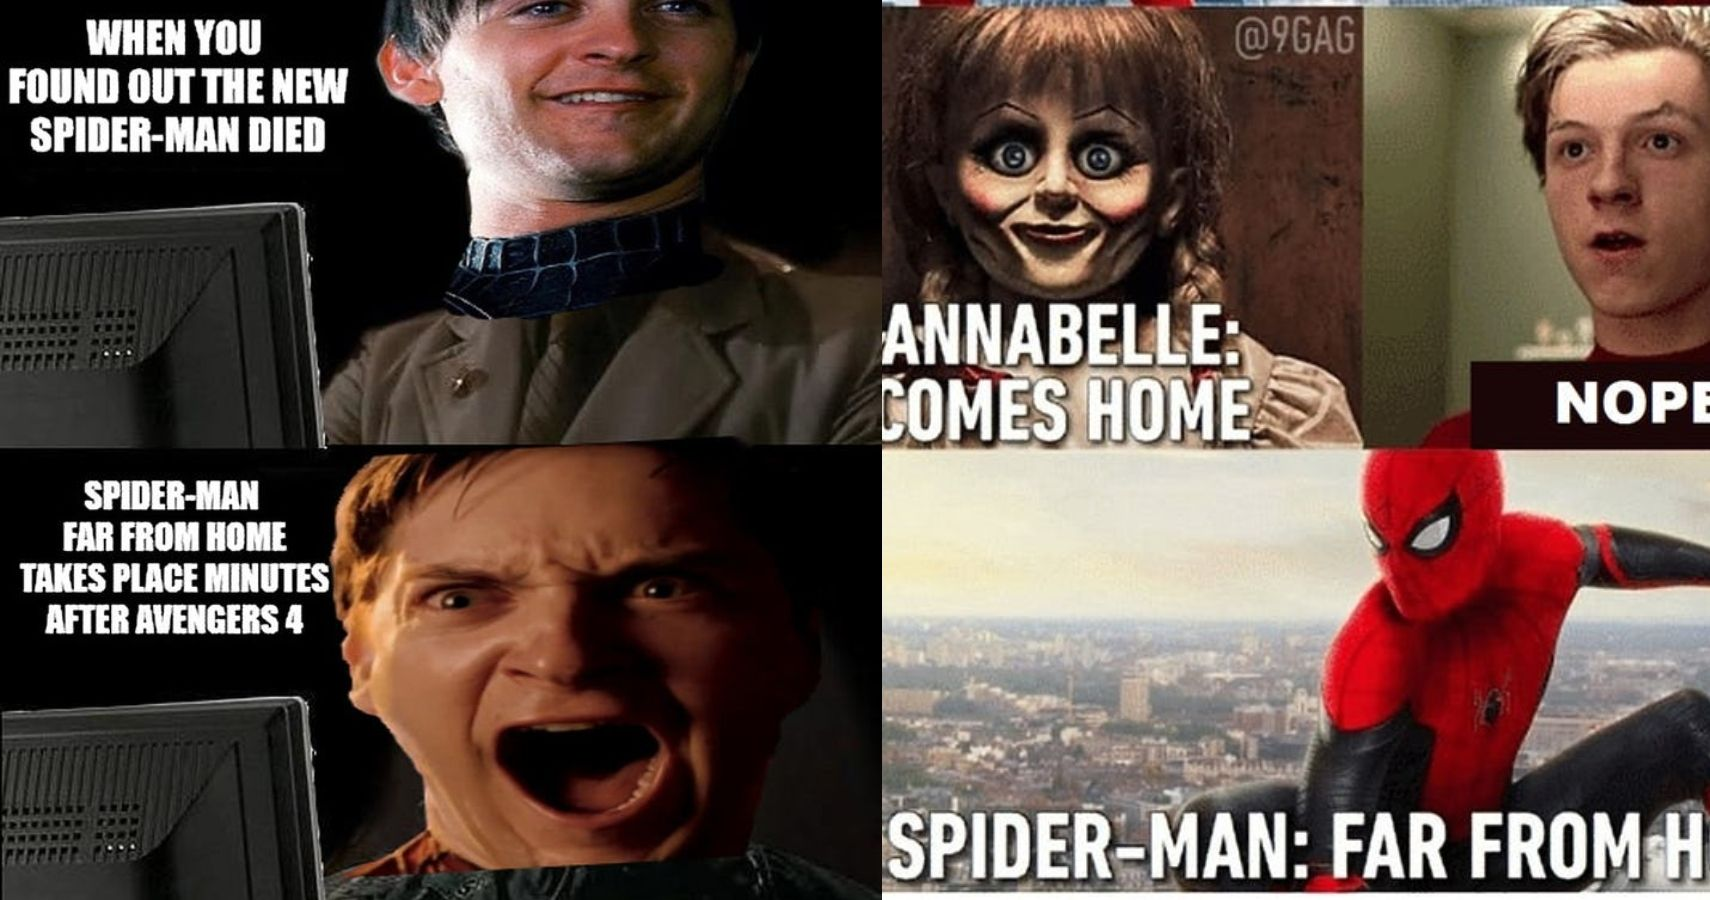 Spider-Man: Far From Home: 10 Best Memes The Internet Has